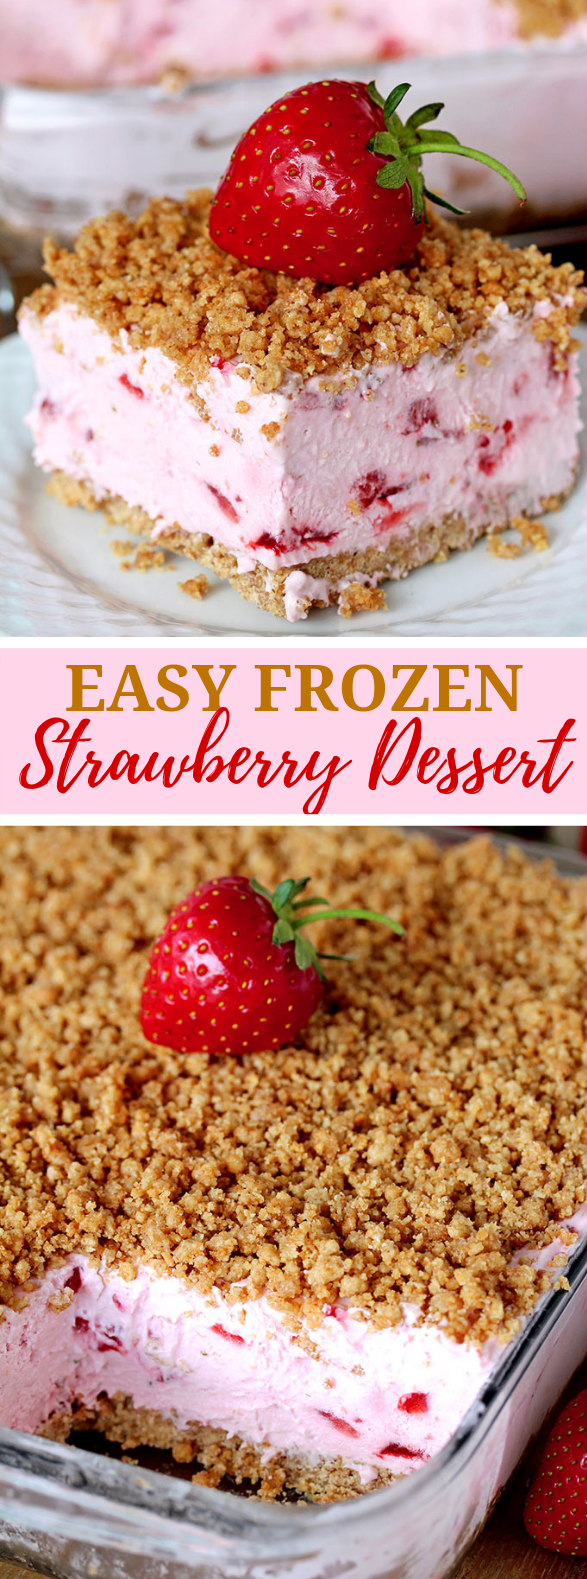 EASY FROZEN STRAWBERRY DESSERT #cake #vegetarian